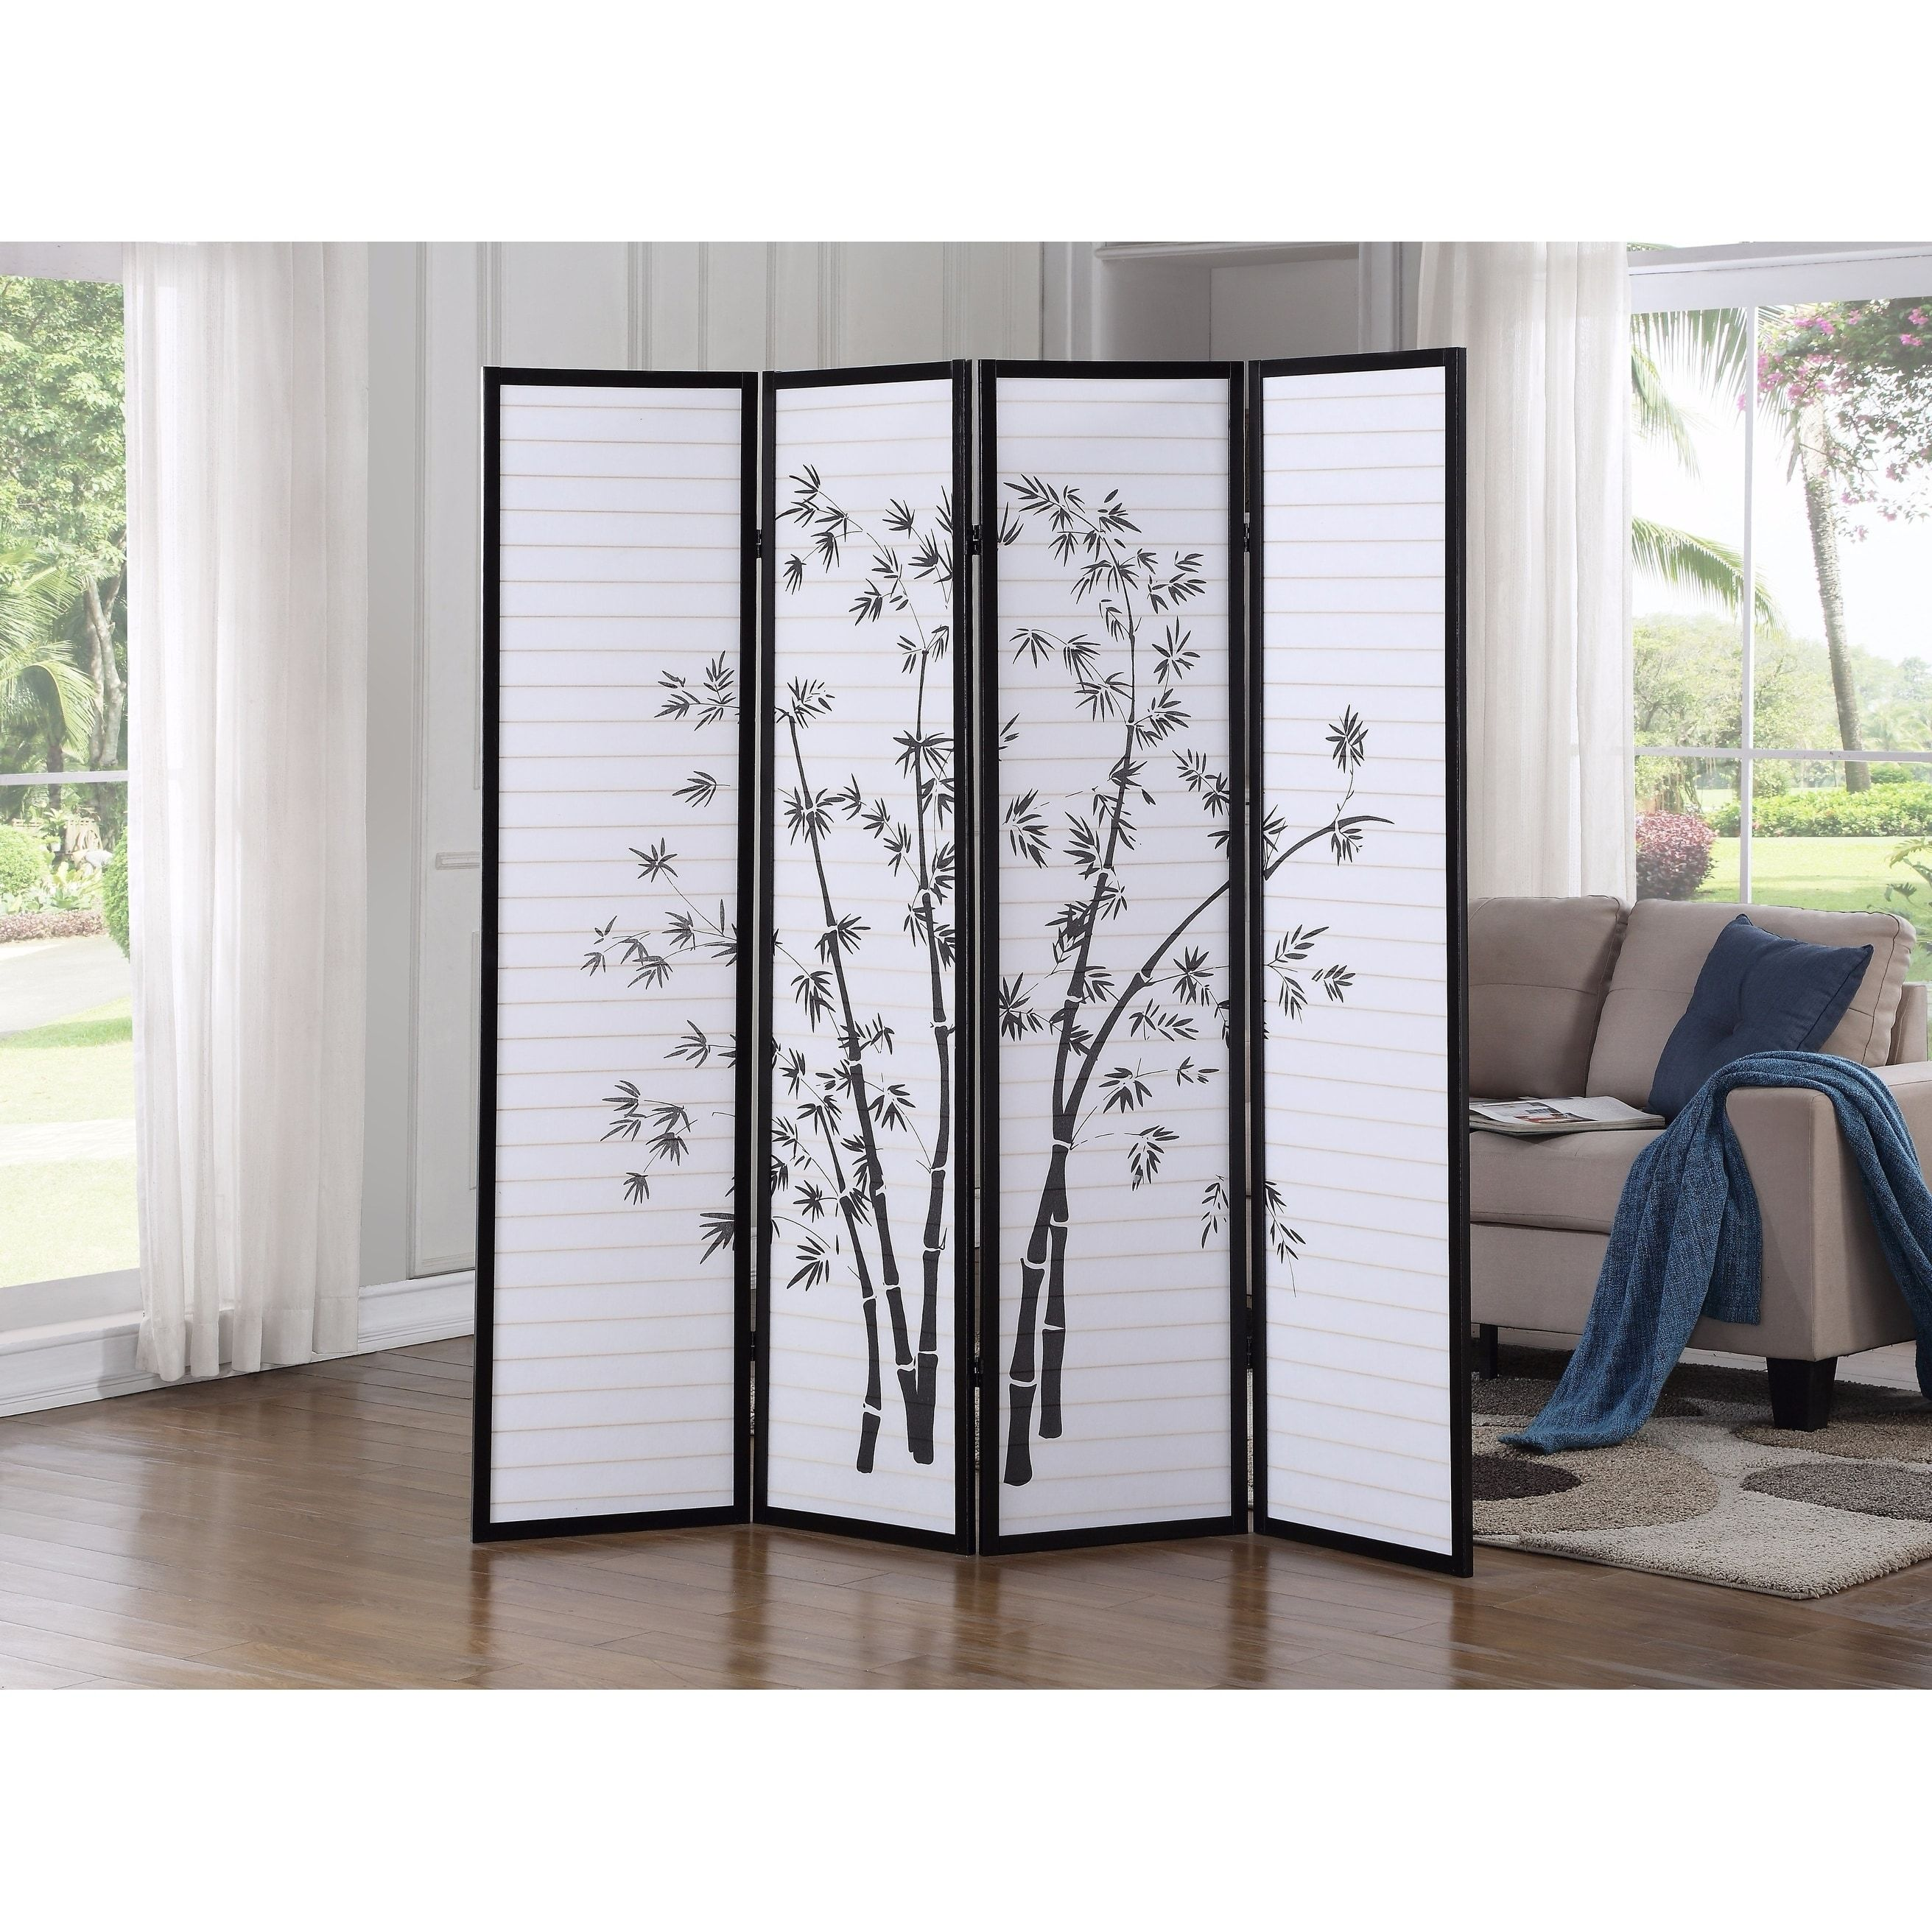 Bamboo Print 4 Panel Framed Room Screen Divider Black